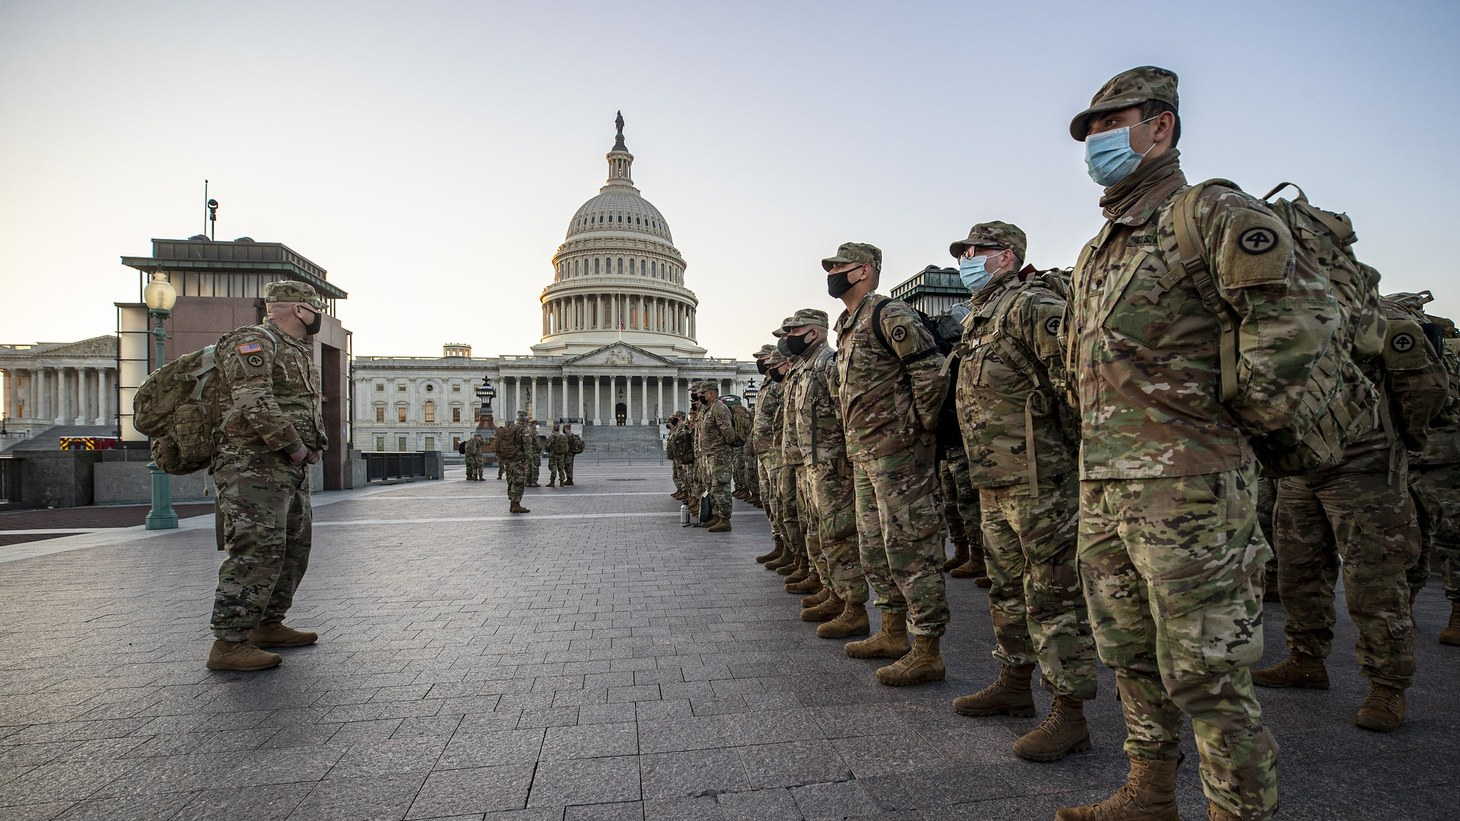 Local and federal security officials near the Capitol in Washington, D.C. expect about 20,000 National Guard members to be involved in President-elect Joe Biden's inauguration next week. January 14, 2021.